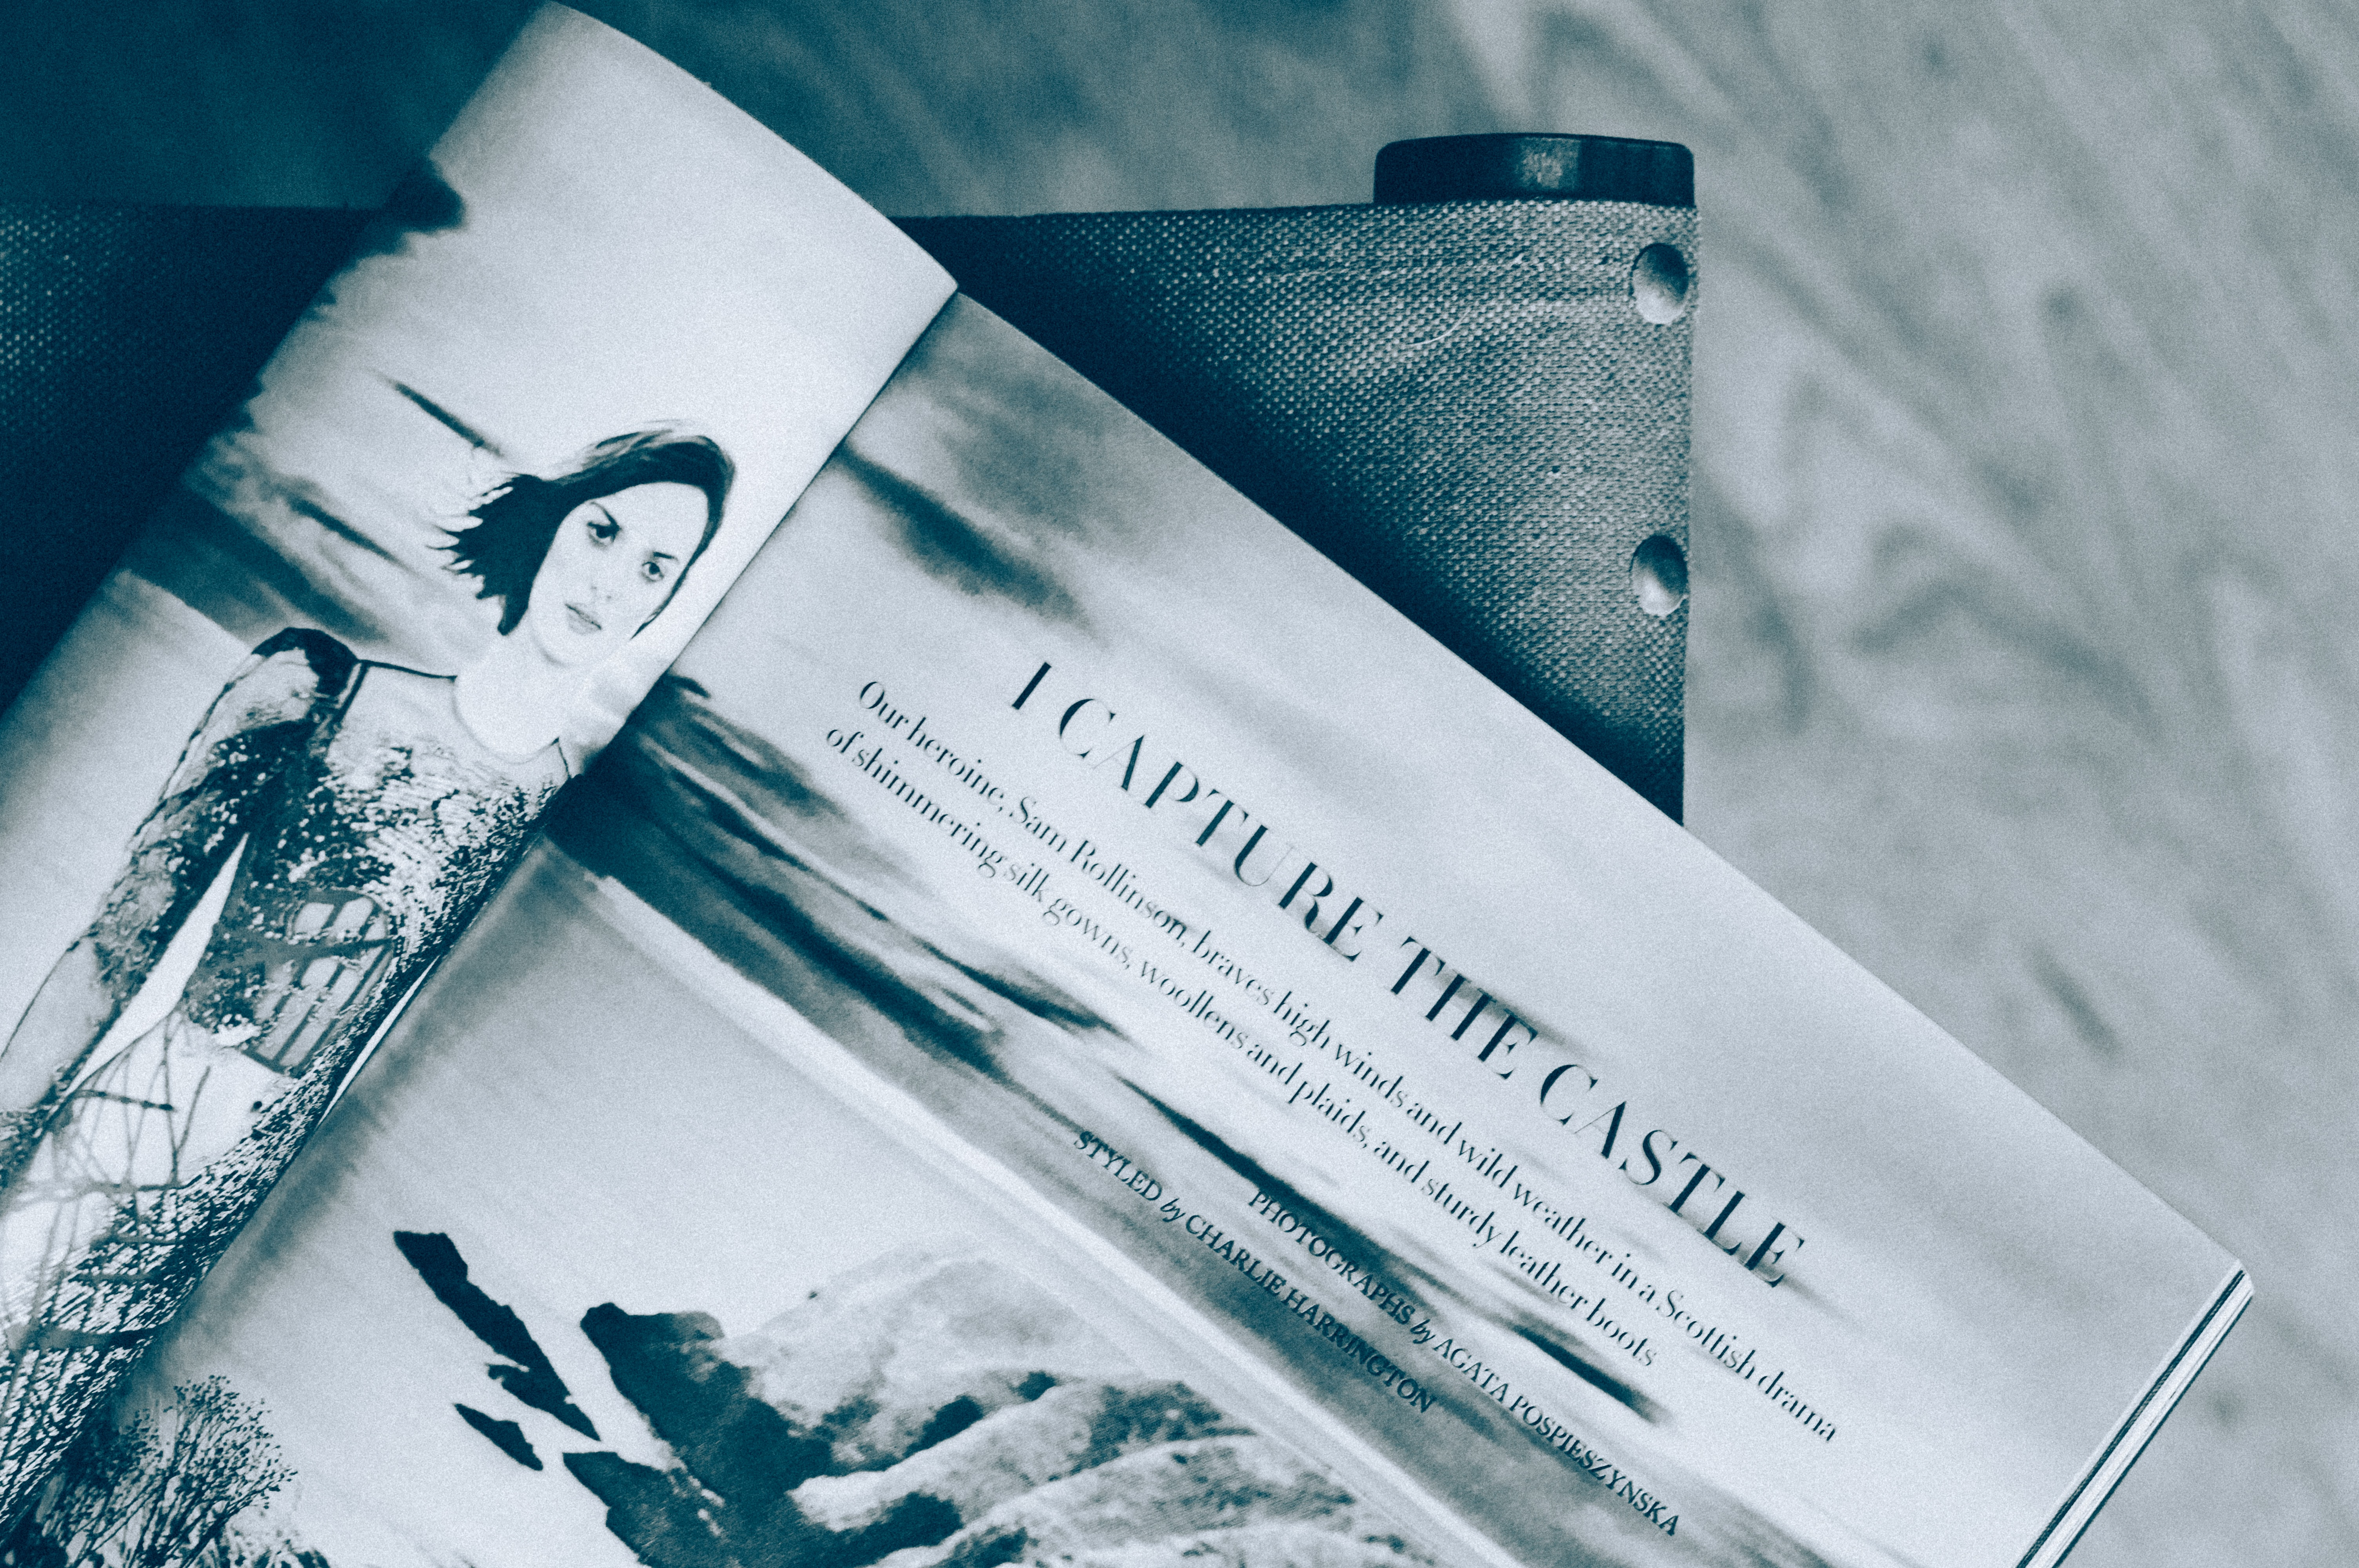 A monochrome shot of a magazine on a chair